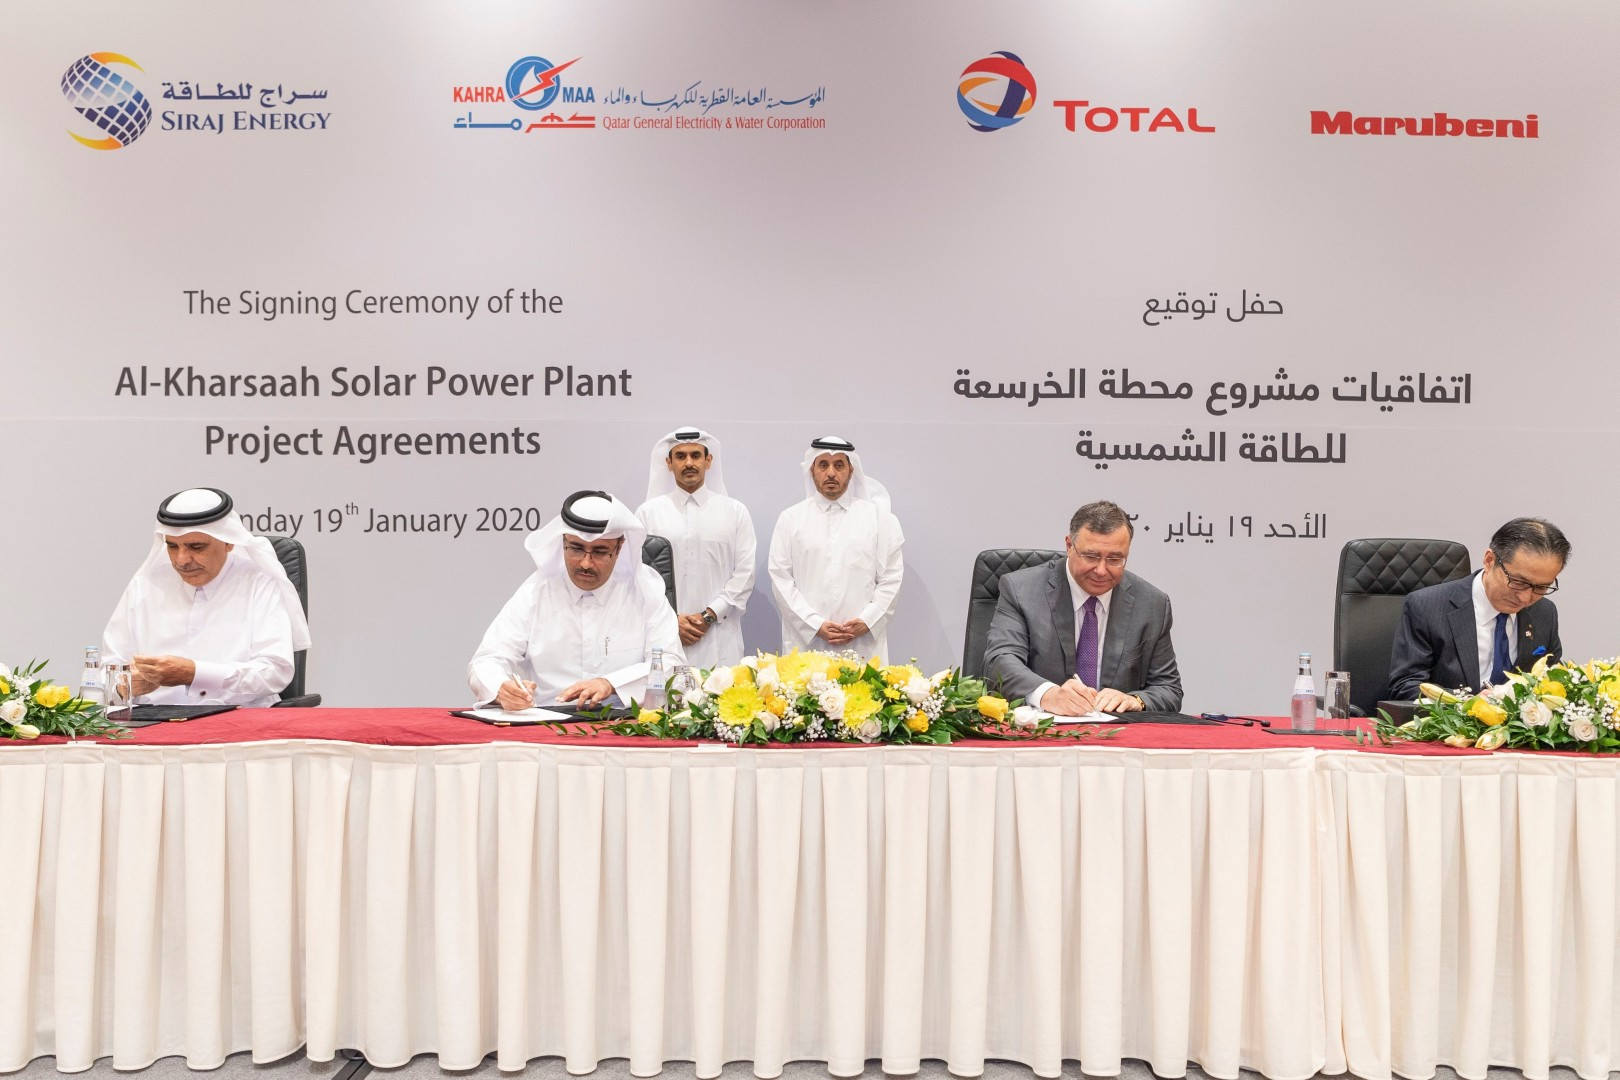 Source: Qatar General Electricity & Water Corporation